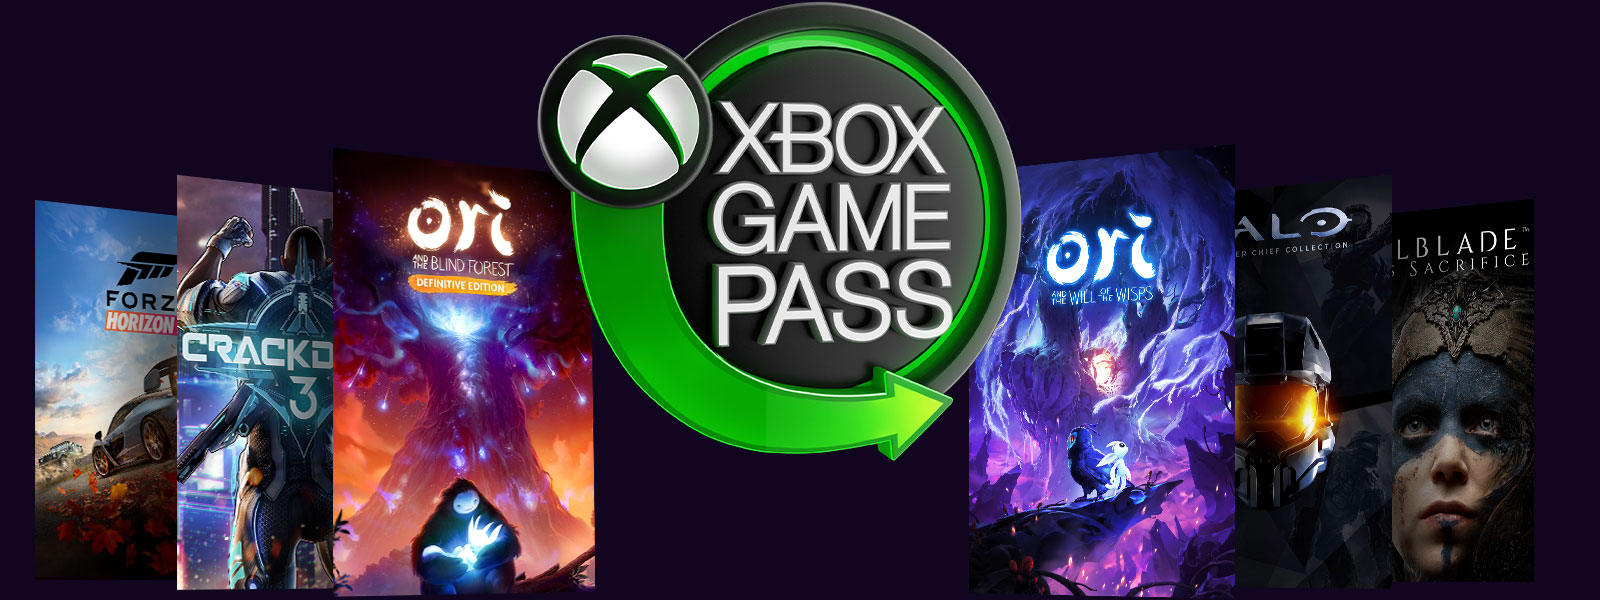 Xbox Game Pass-logo med coverbillede af Ori and the Will of the Wisps, Ori og Blind Forest, Crackdown 3, Halo, Forza Horizon 4 og Hellblade